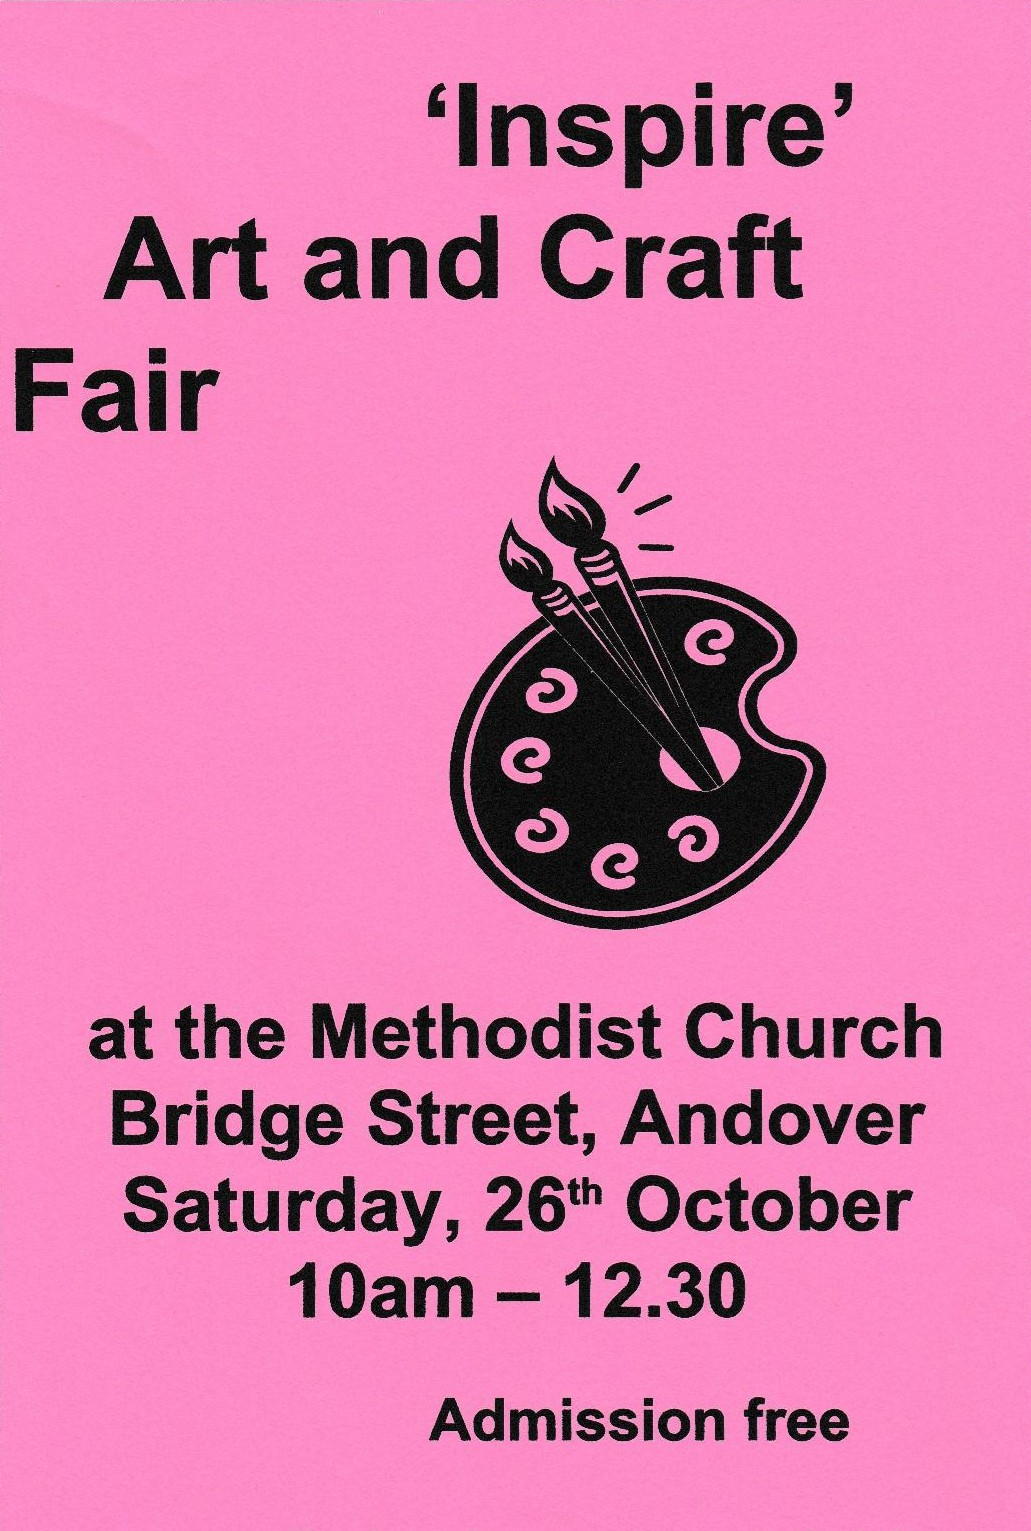 Inspire Art and Craft Fair